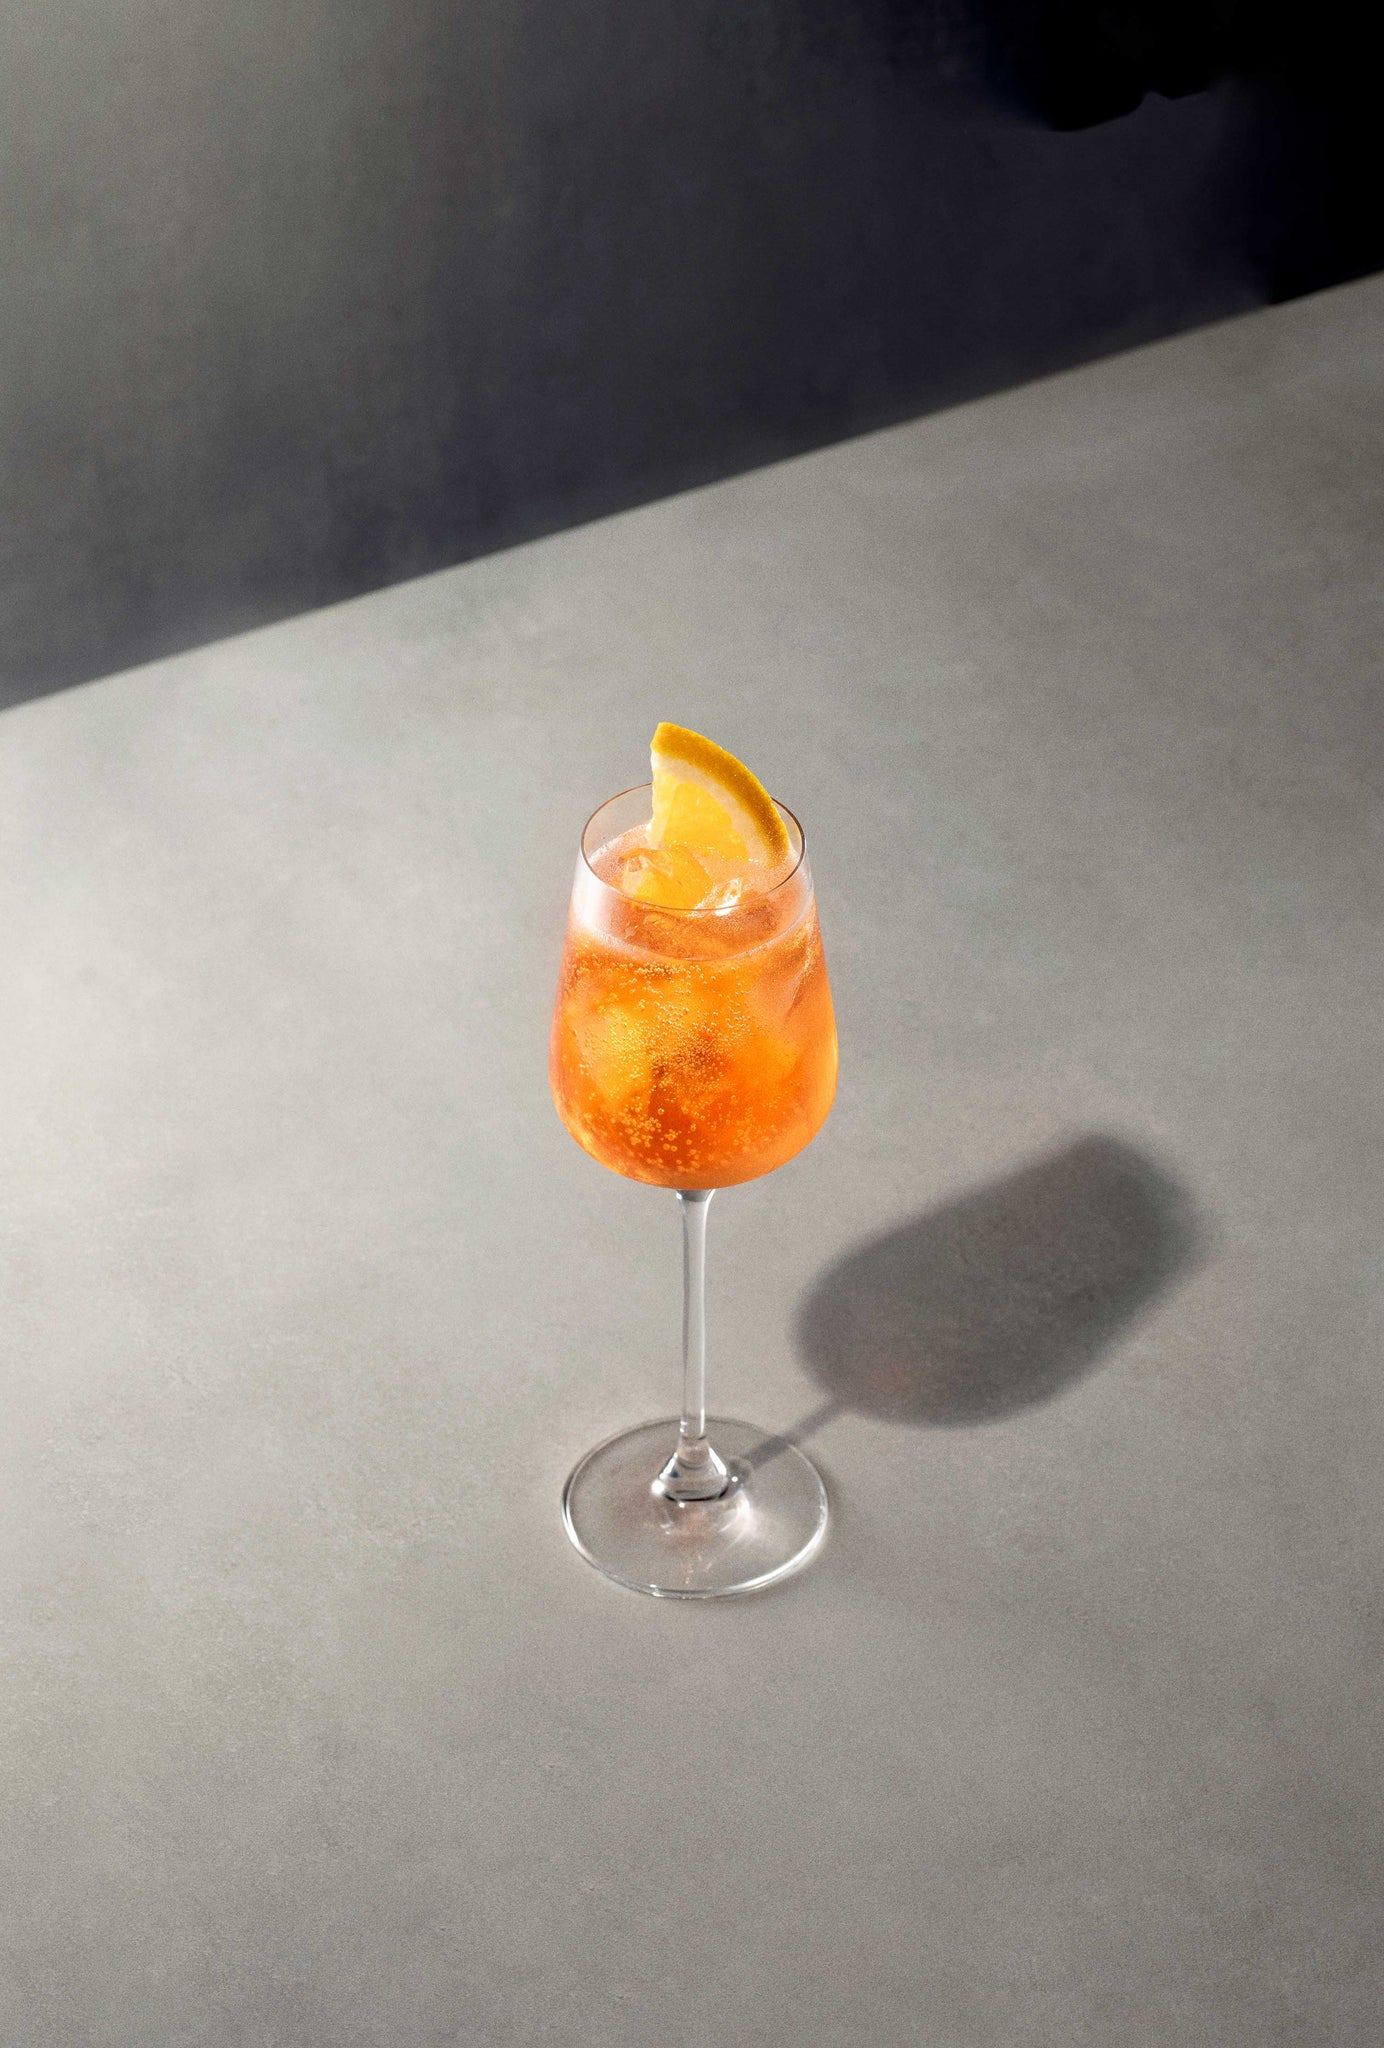 Black Lines Aperol Spritz Cocktail single serve in clear wine glass with cubed ice and garnished with an orange slice